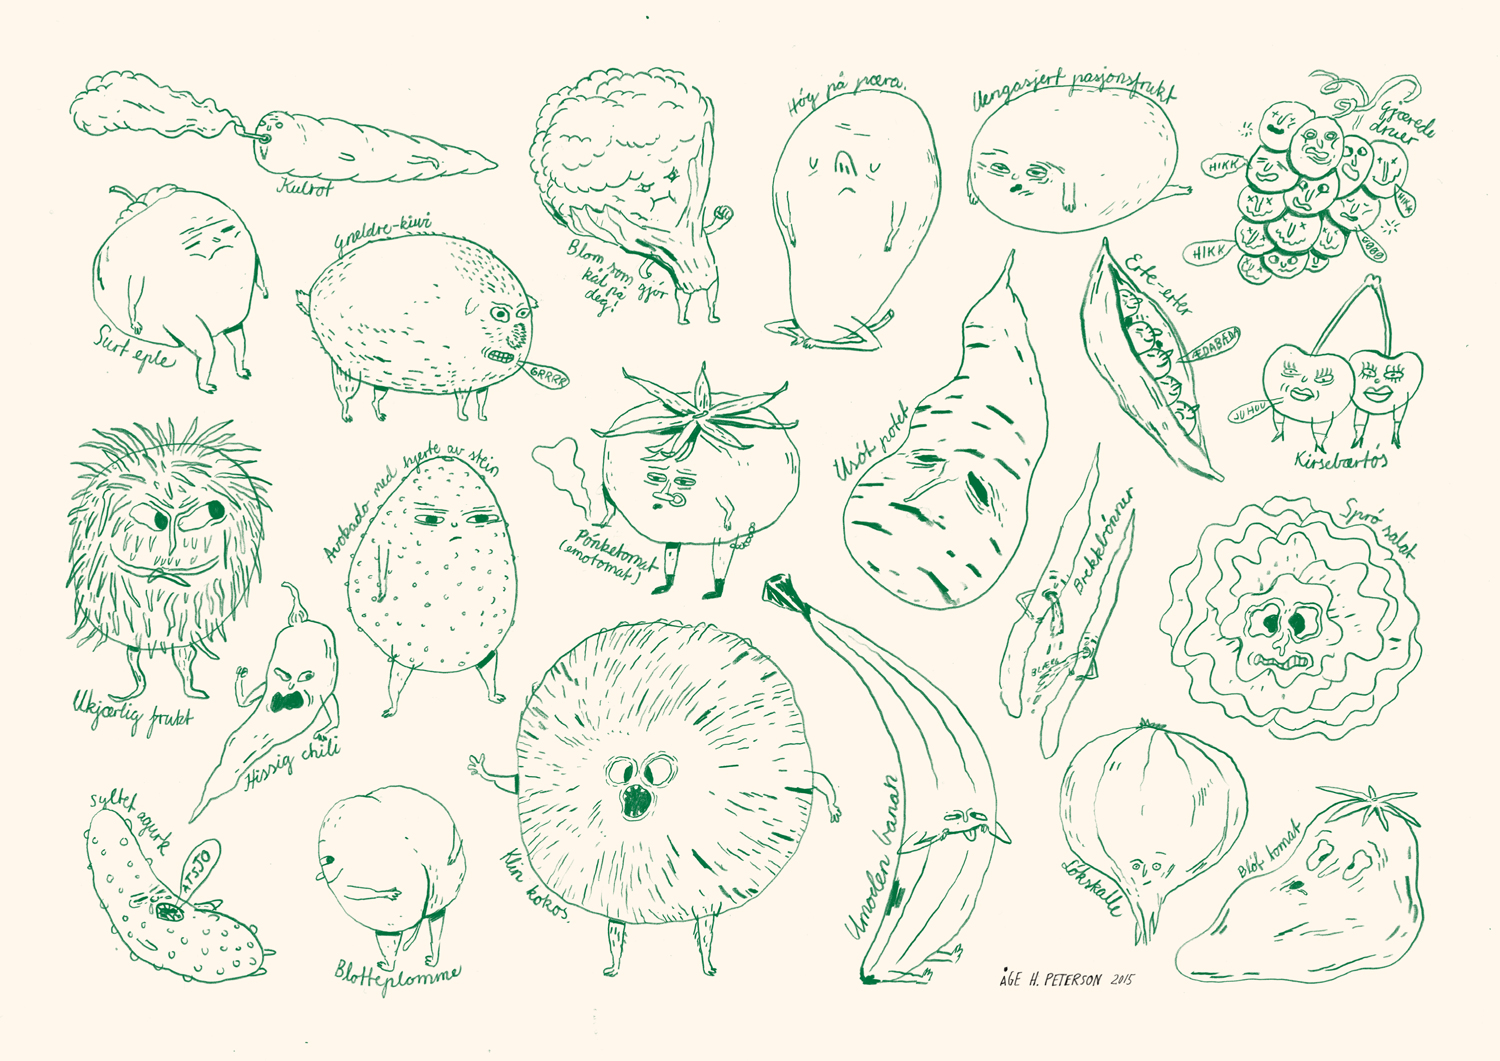 Bad vegetables , (November, 2015). This is a piece (called «Dårlige grønnsaker» in Norwegian), with several names for the different characters which proves very difficult to translate into english in a funny way, since it's based on Norwegian play with words. A few examples in english though: Cool carrot, barking kiwi, cuckoo coconut, puking lima beans. Not so funny when it's translated. Teasing peas works though. To sum it up I depict vegetables/fruit in way that is opposite to the typical «Eat your greens and stay healthy» kind of message. It has proven popular among kids at sales fairs. But anyway. Kids, you should definitely listen to your mom and/or dad and eat your vegetables and fruit. Don't listen to me.